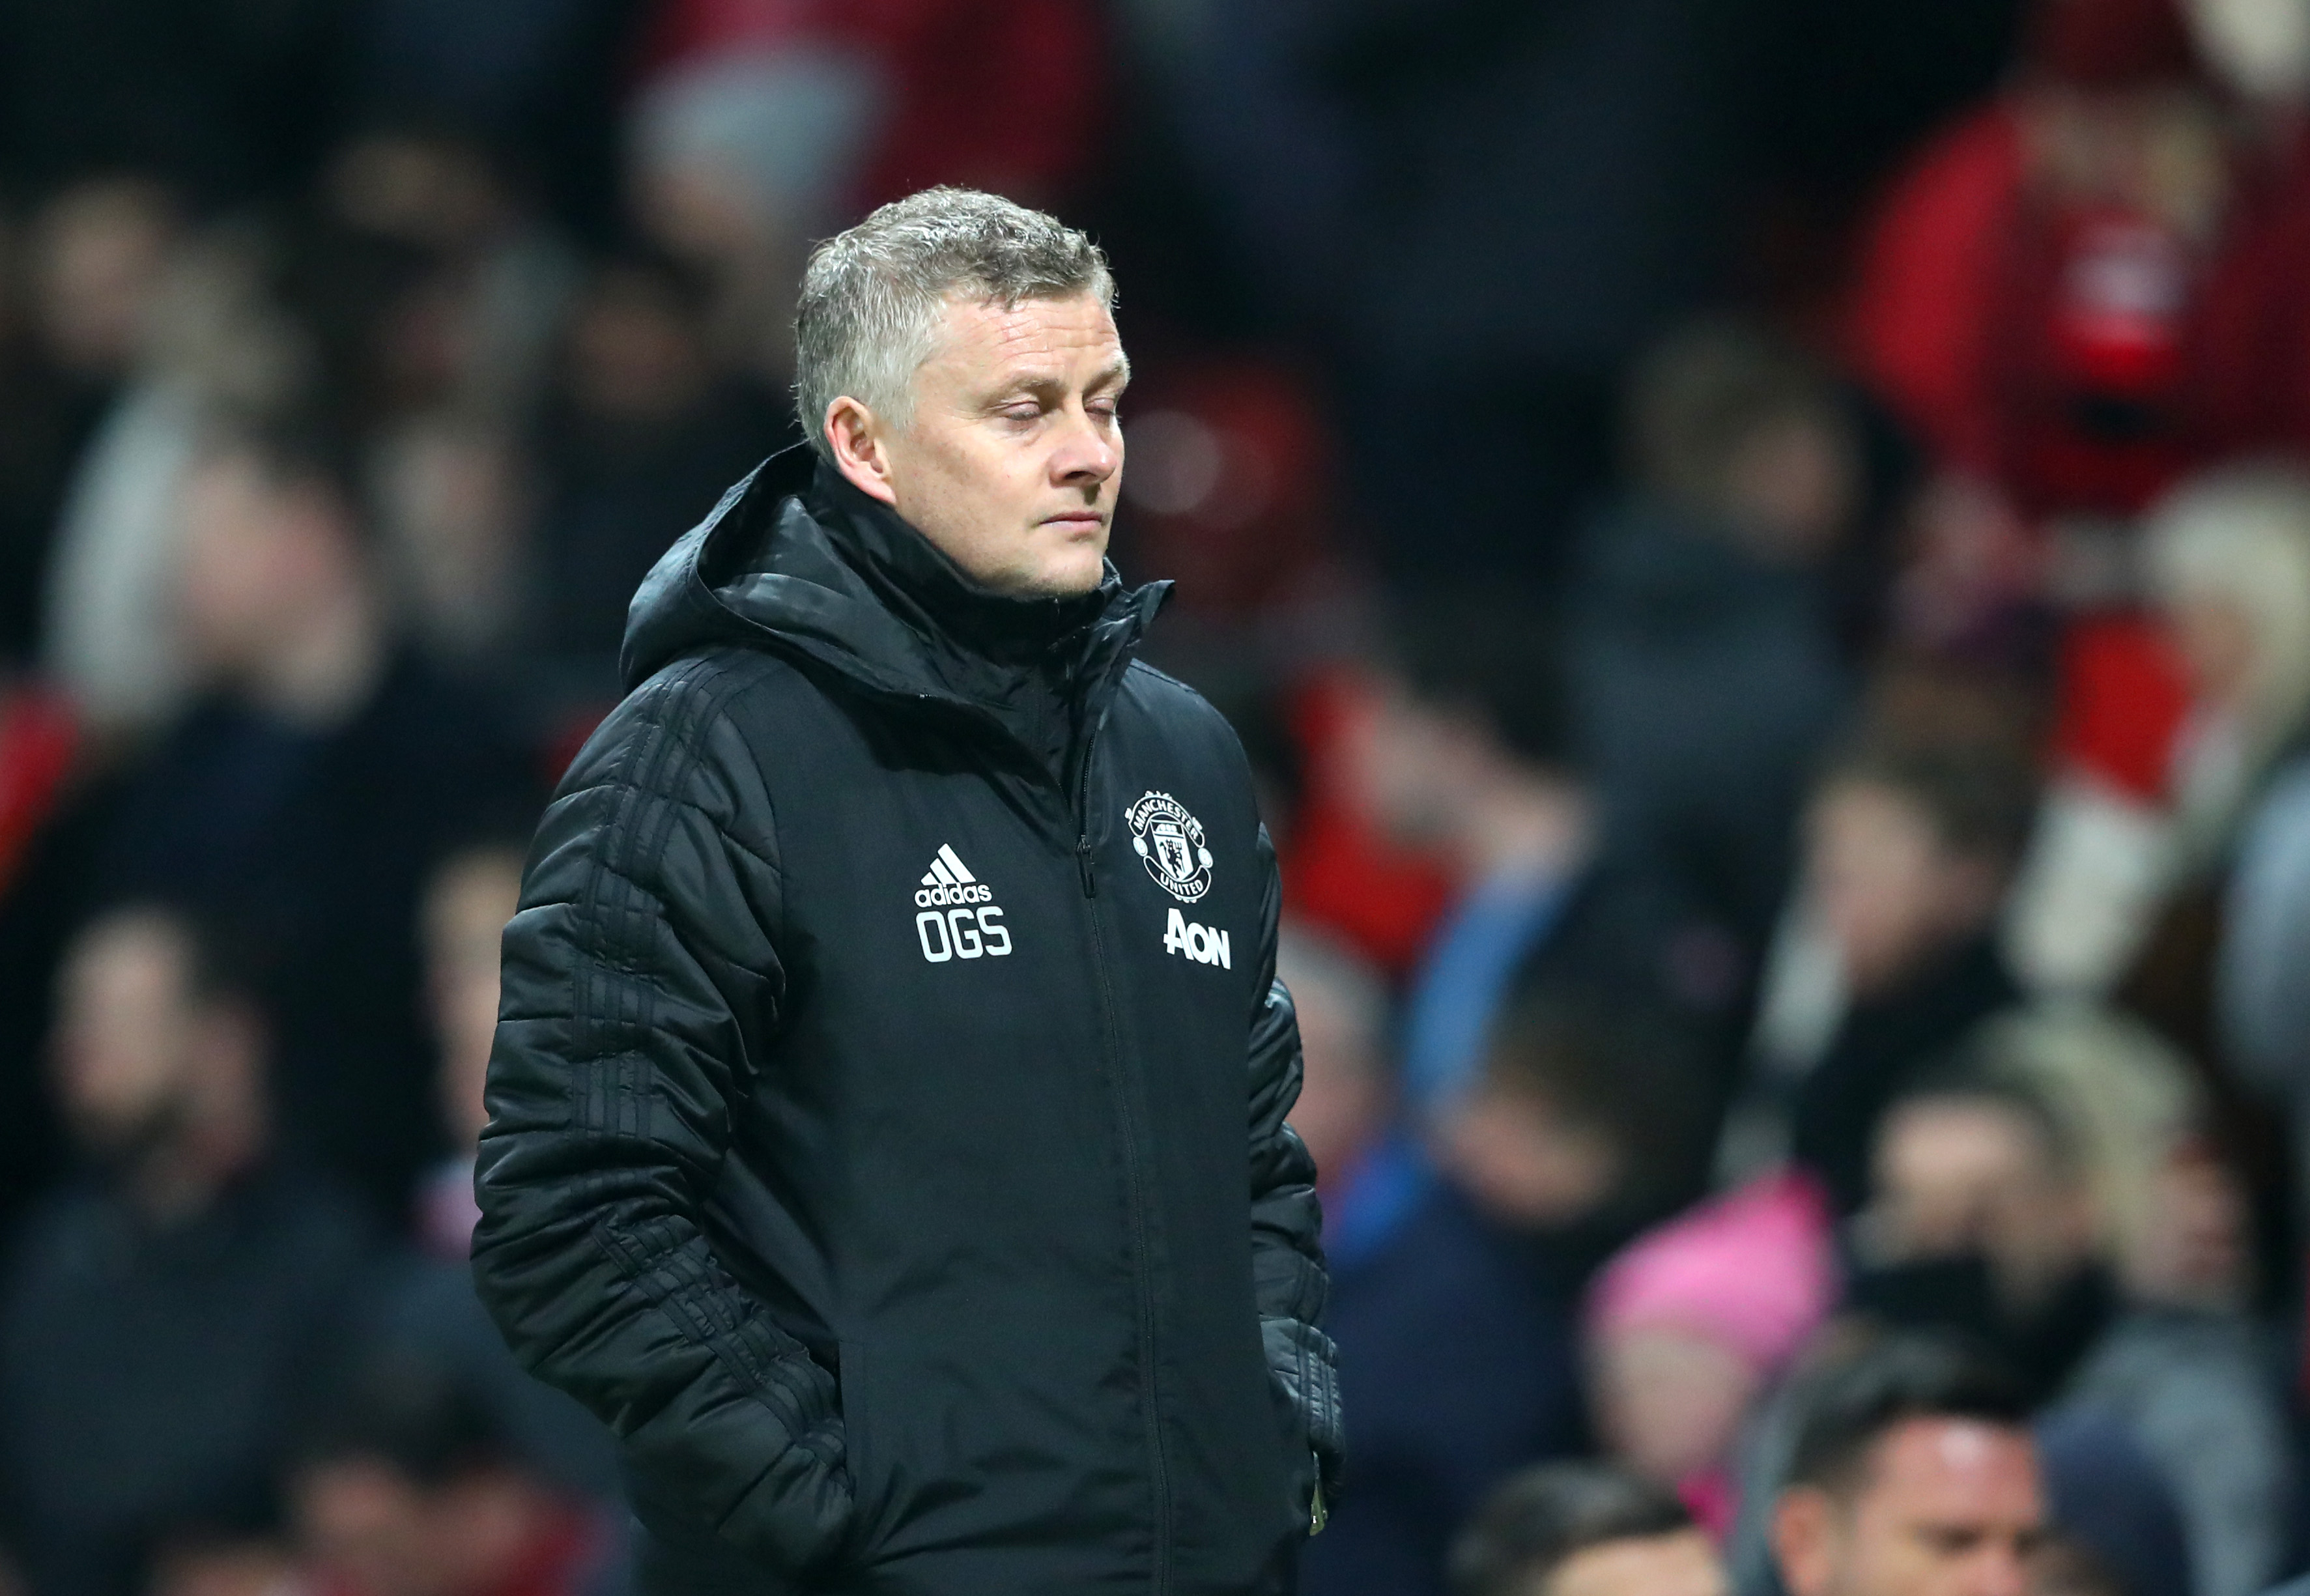 How Manchester United perform this season will be crucial to Solskjaer's future.(Photo by Alex Livesey/Getty Images)